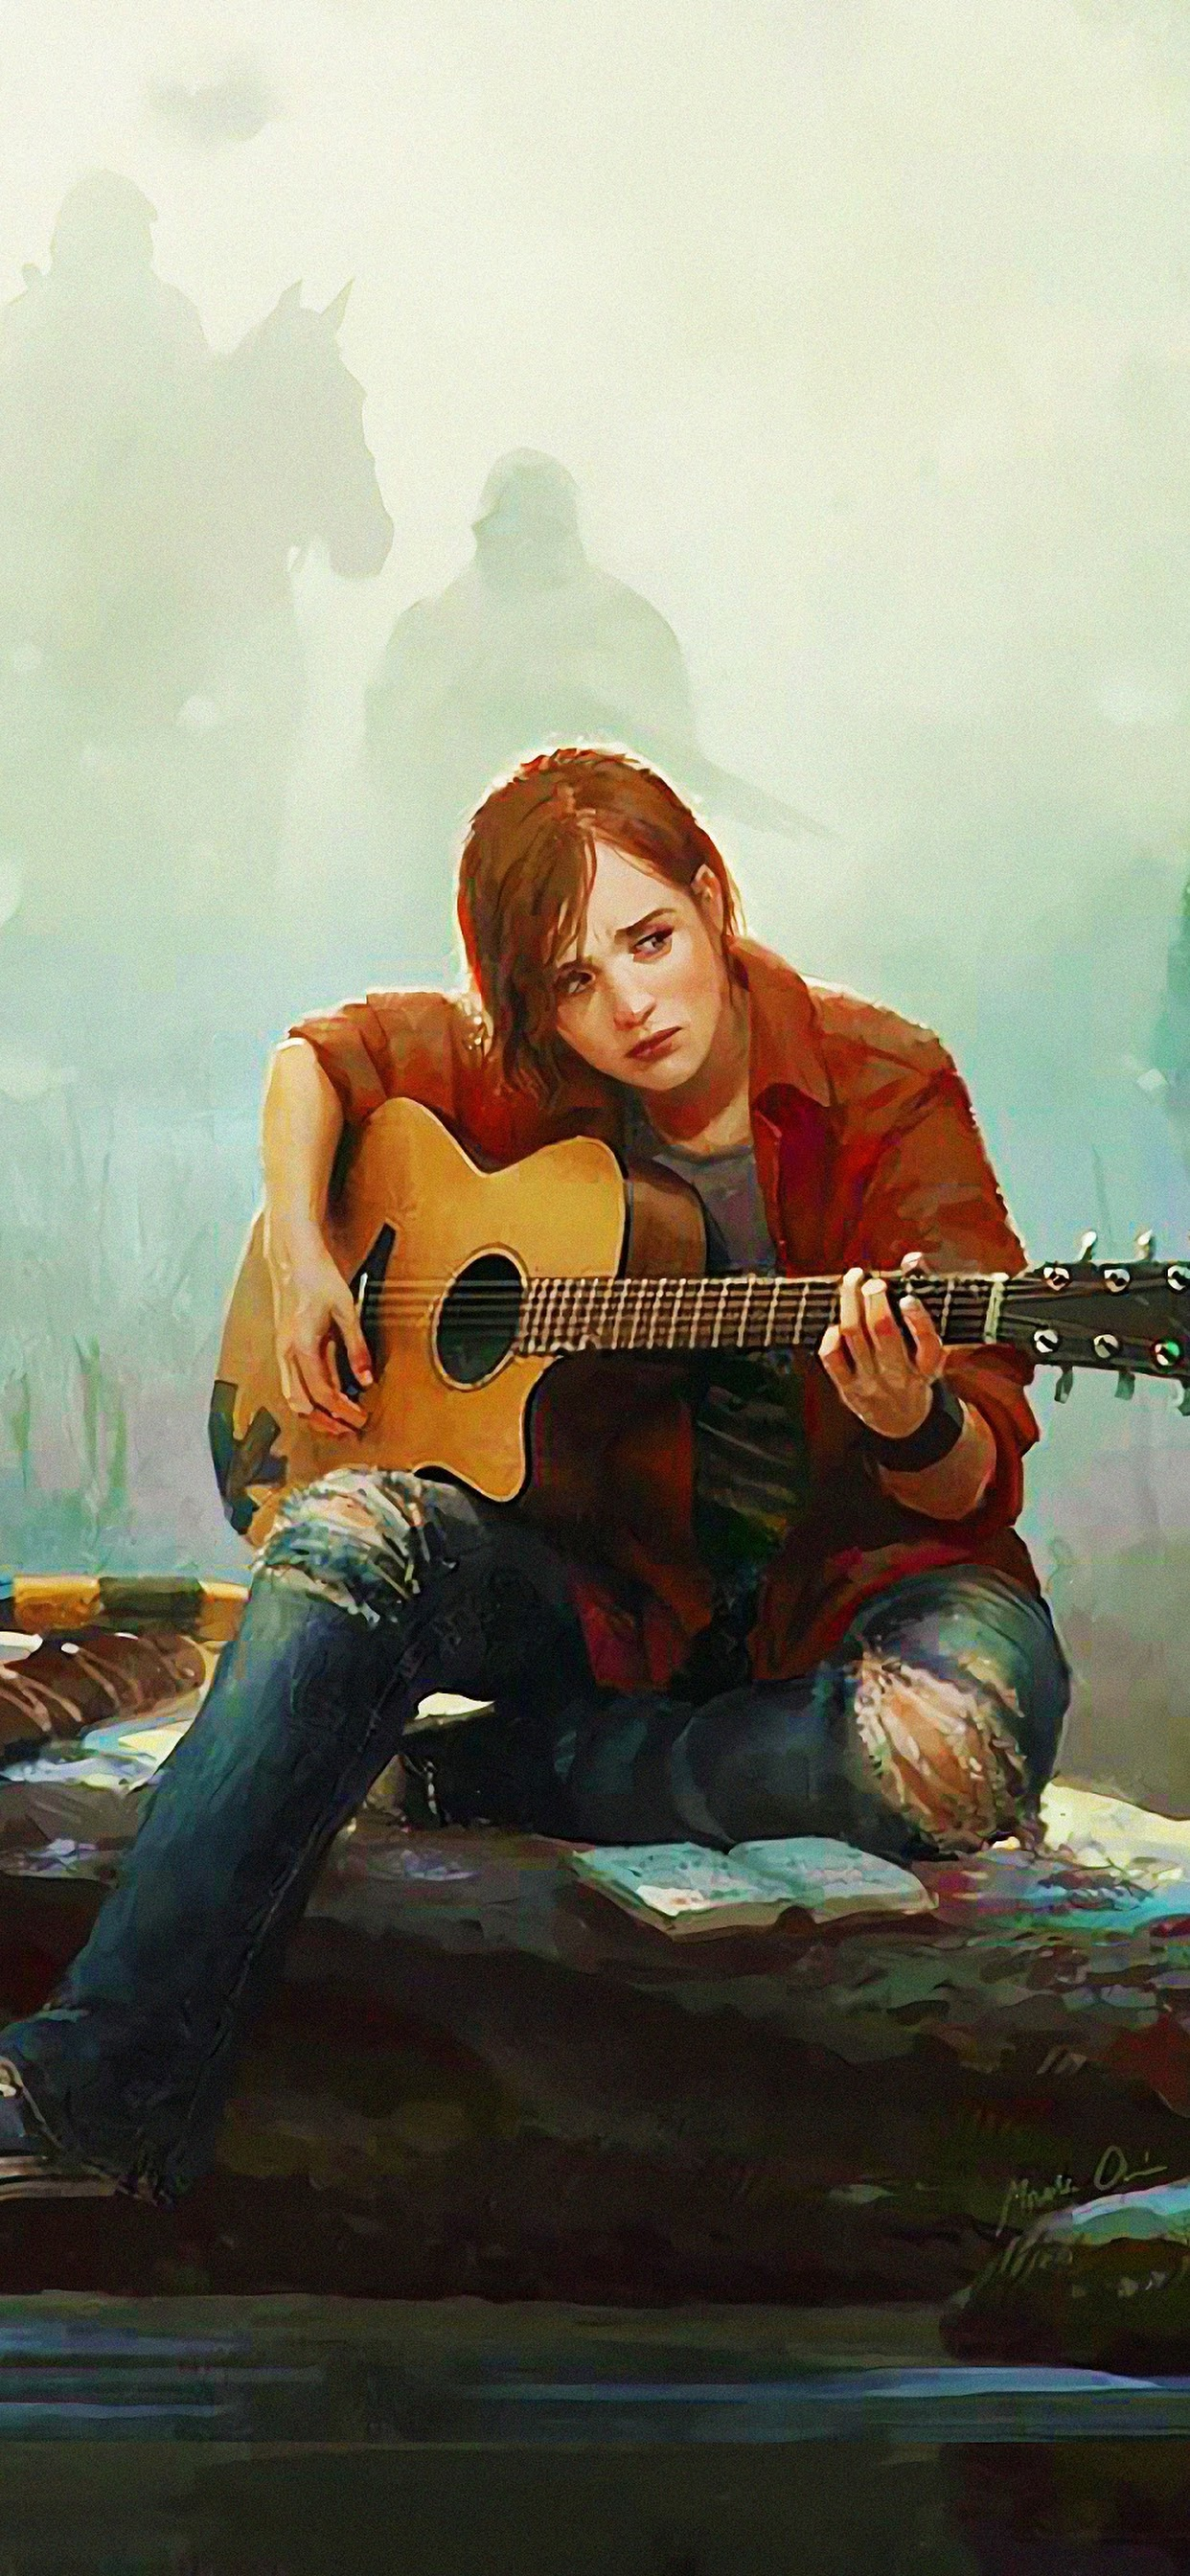 The Last Of Us Part 2 Ellie Playing Guitar 4k Wallpaper 8